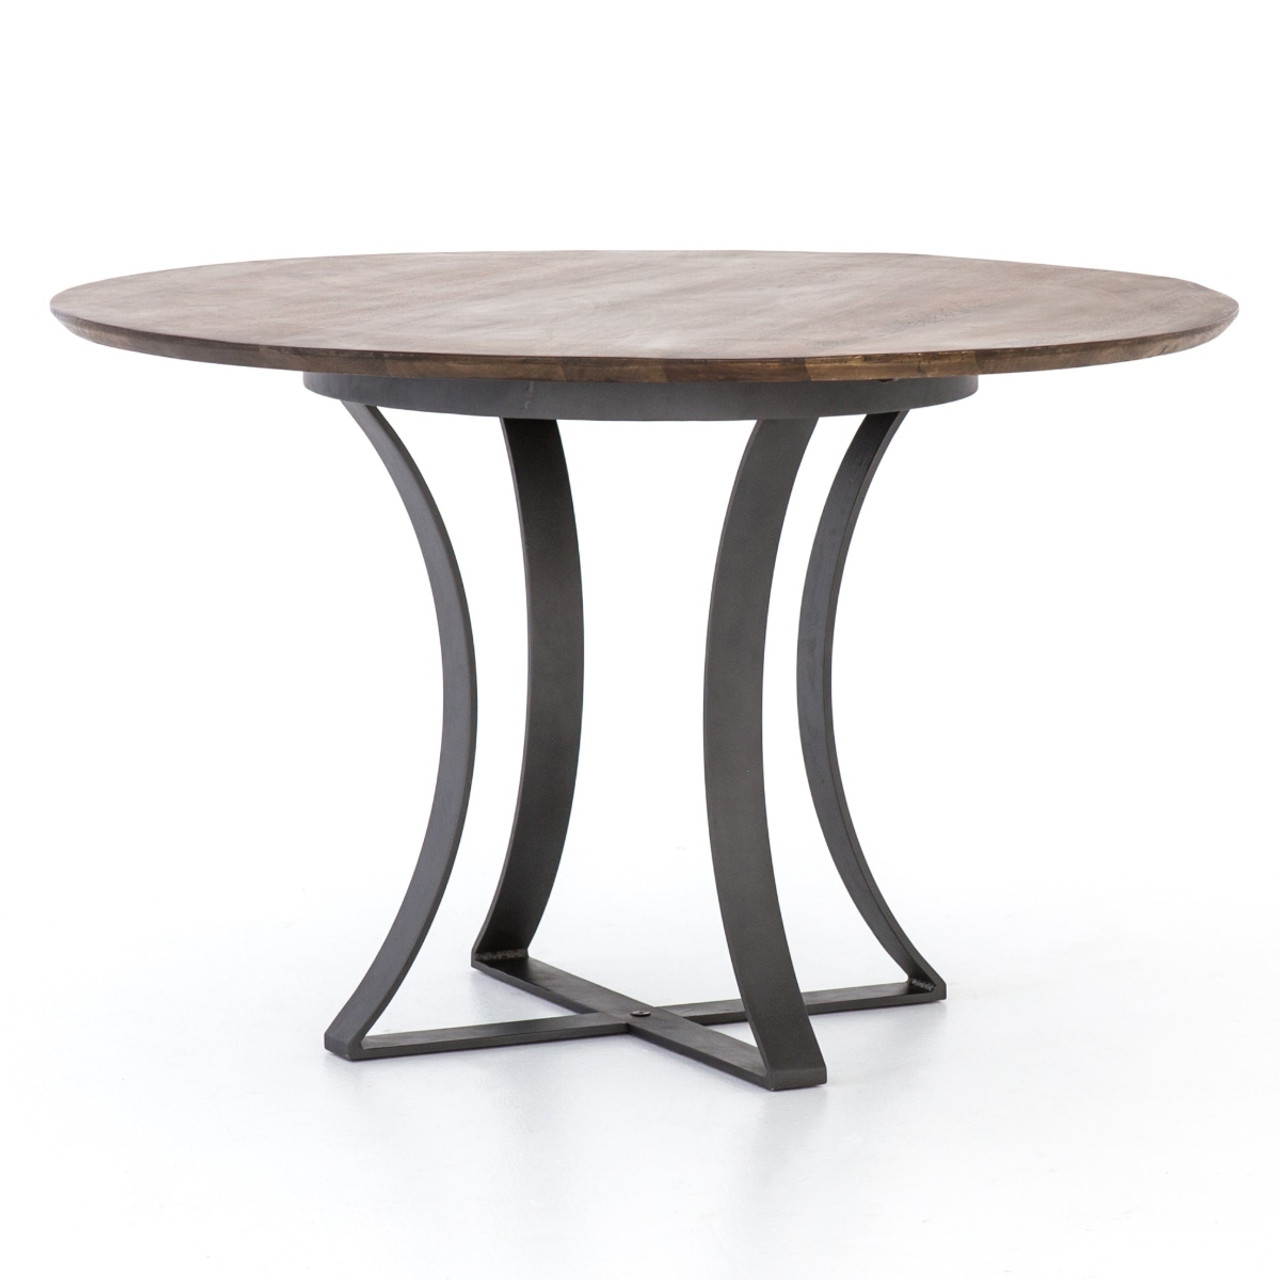 Gage Reclaimed Wood Iron Round Dining Table 48 Zin Home